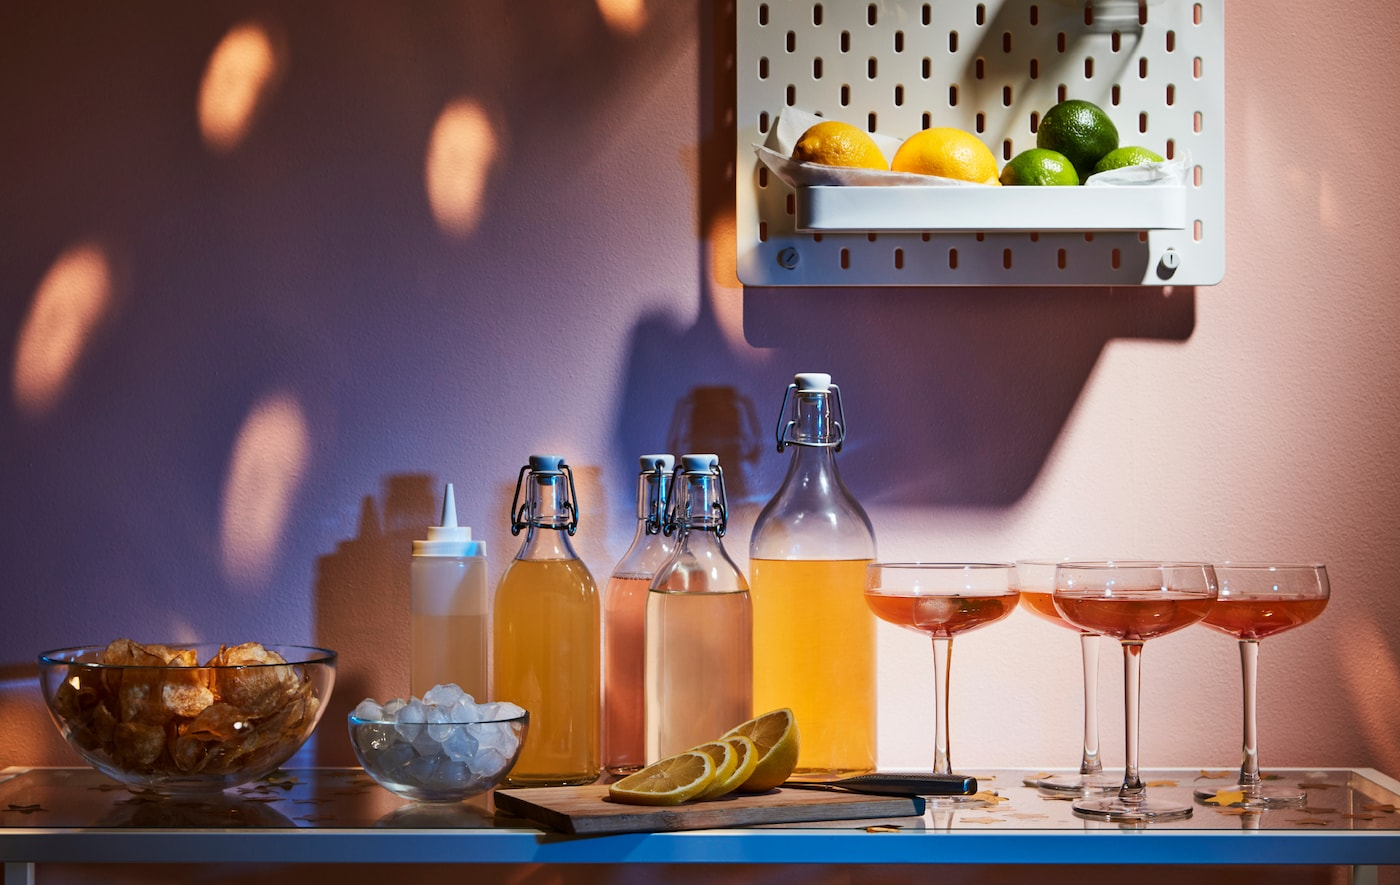 A display of drinks, glasses and accessories on a side table. On the wall above, a SKÅDIS pegboard holds lemons and limes.